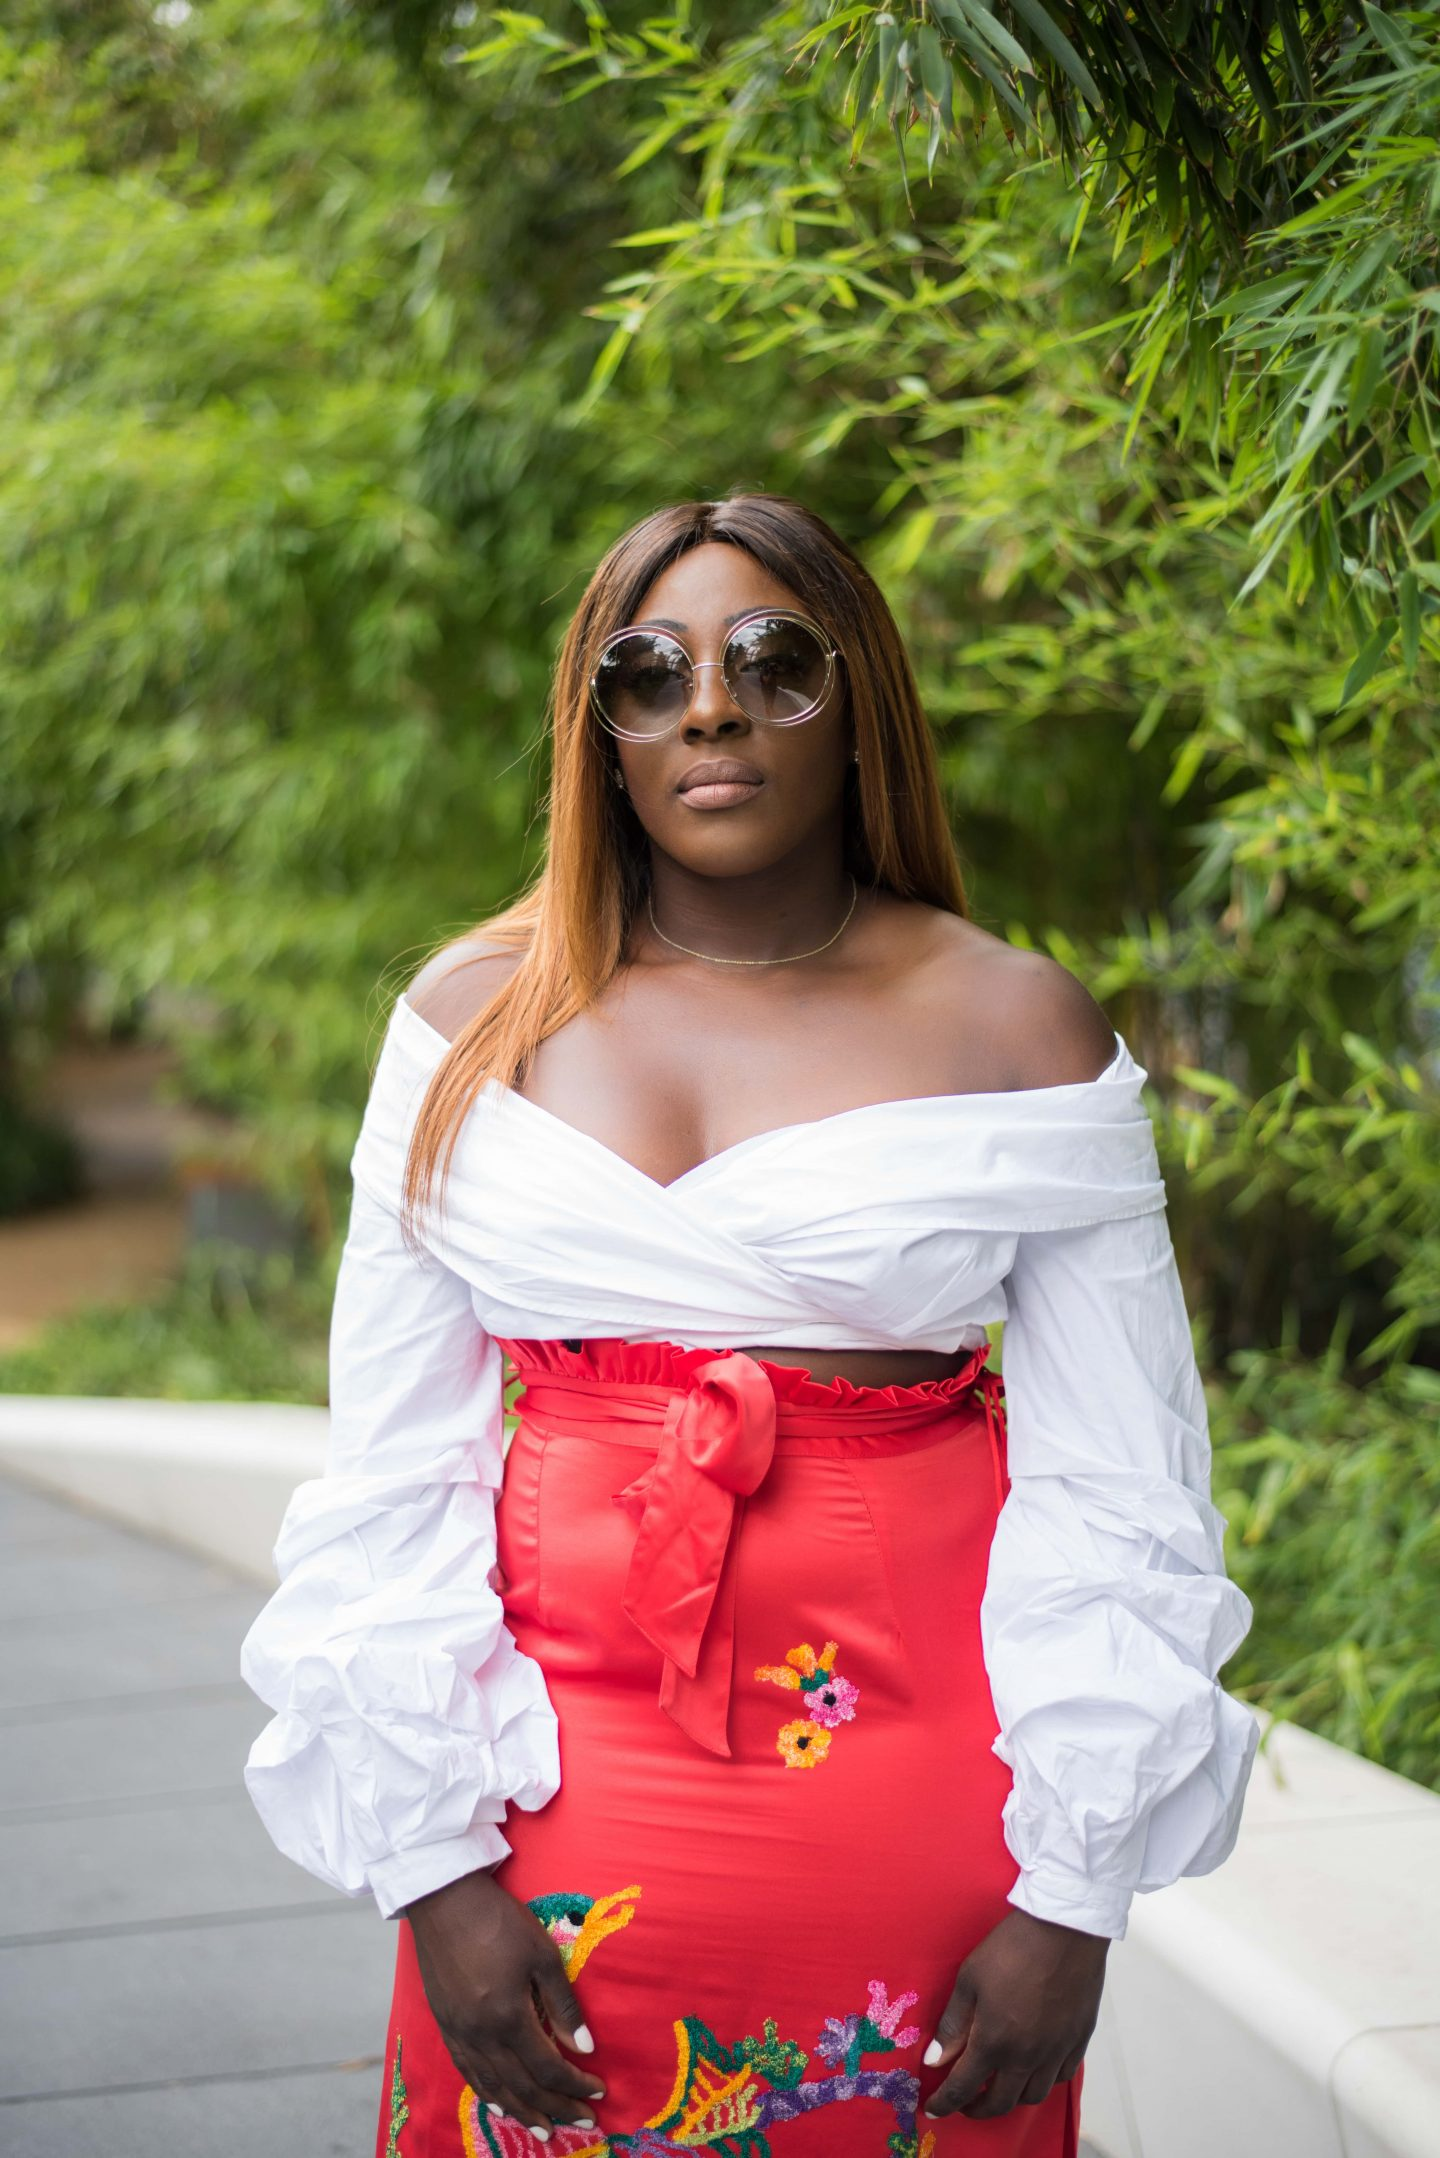 Statement Skirts & Tropical Roof Gardens 3 - asos white top - asos embroidery skirt - chloe sunglasses - Style and the Sass